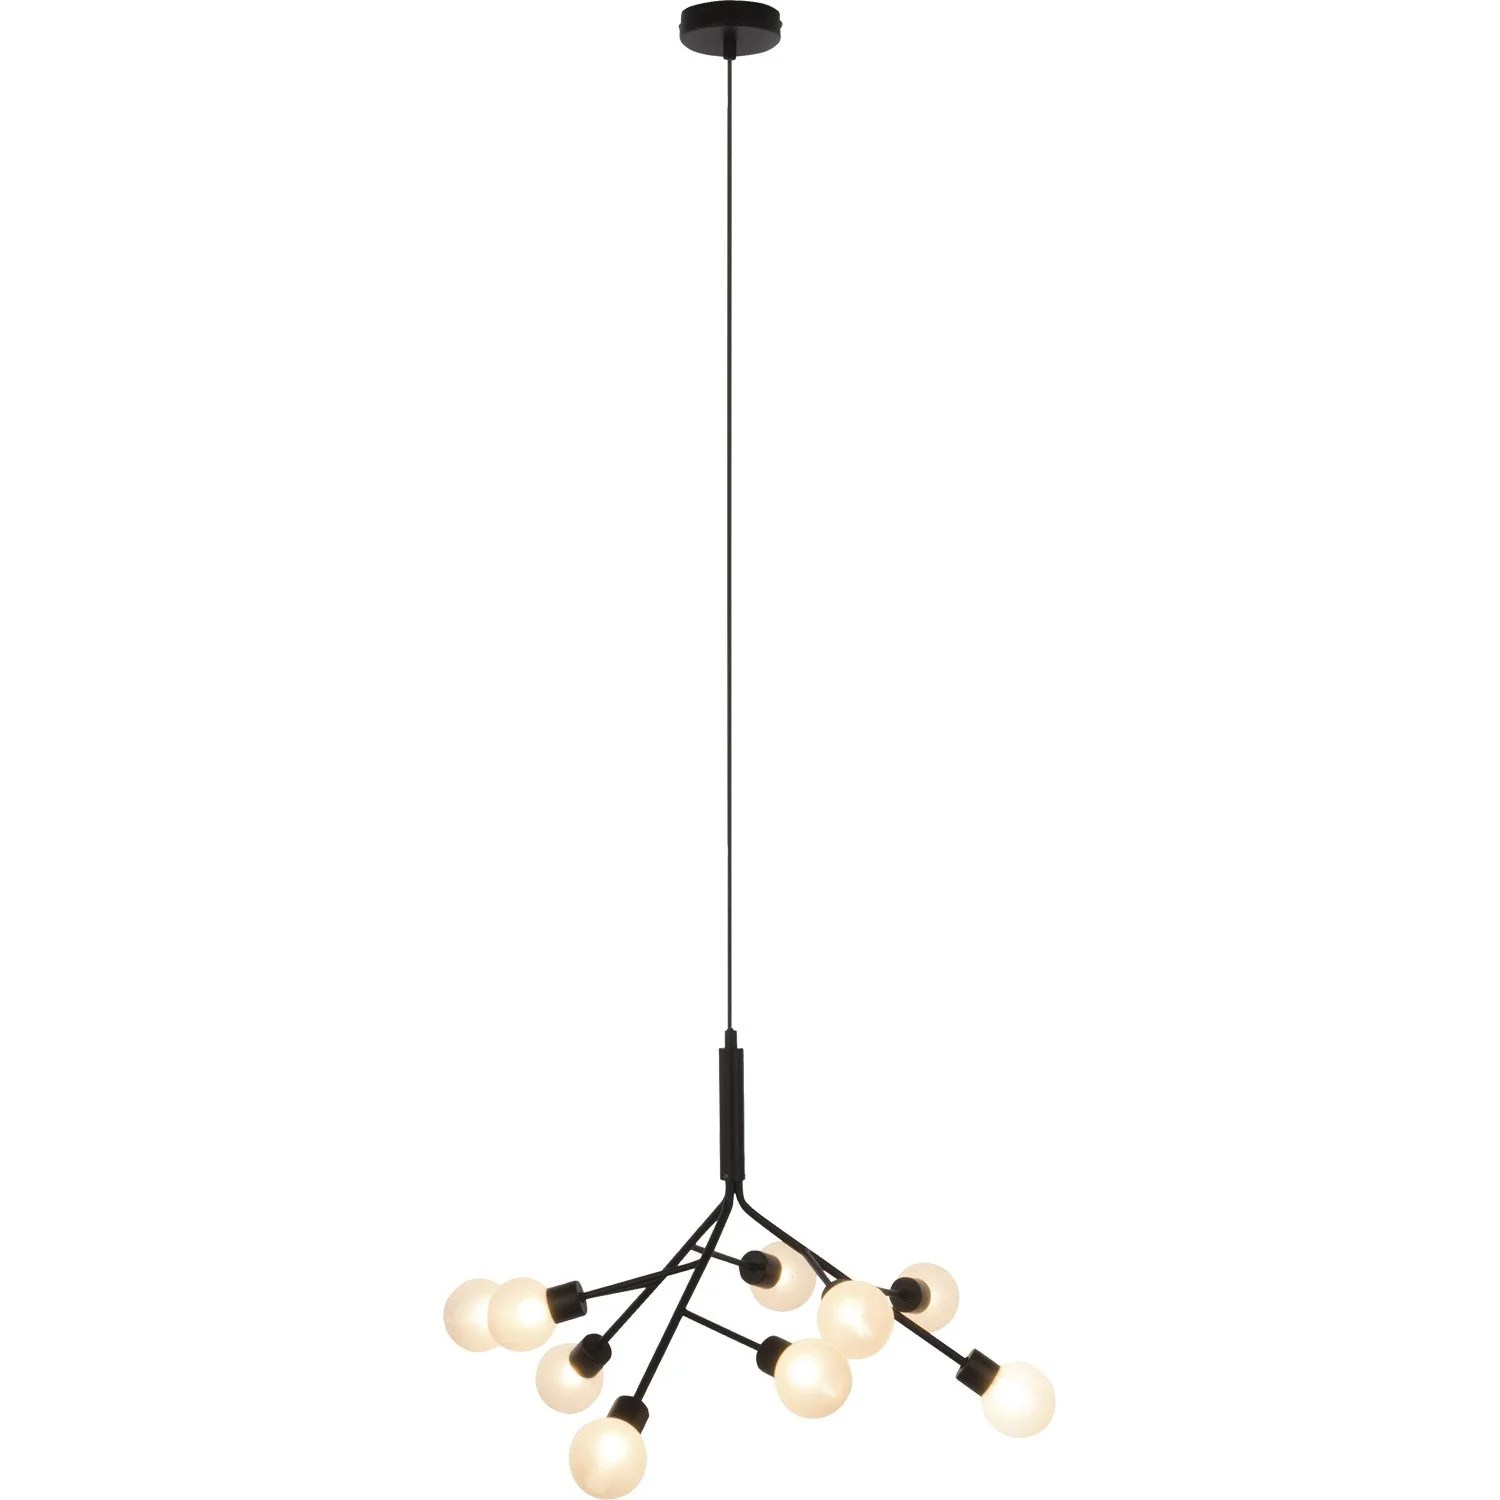 Suspension Metal Design Suspension Design Shoot Métal Noir 9 X 33 W Brilliant